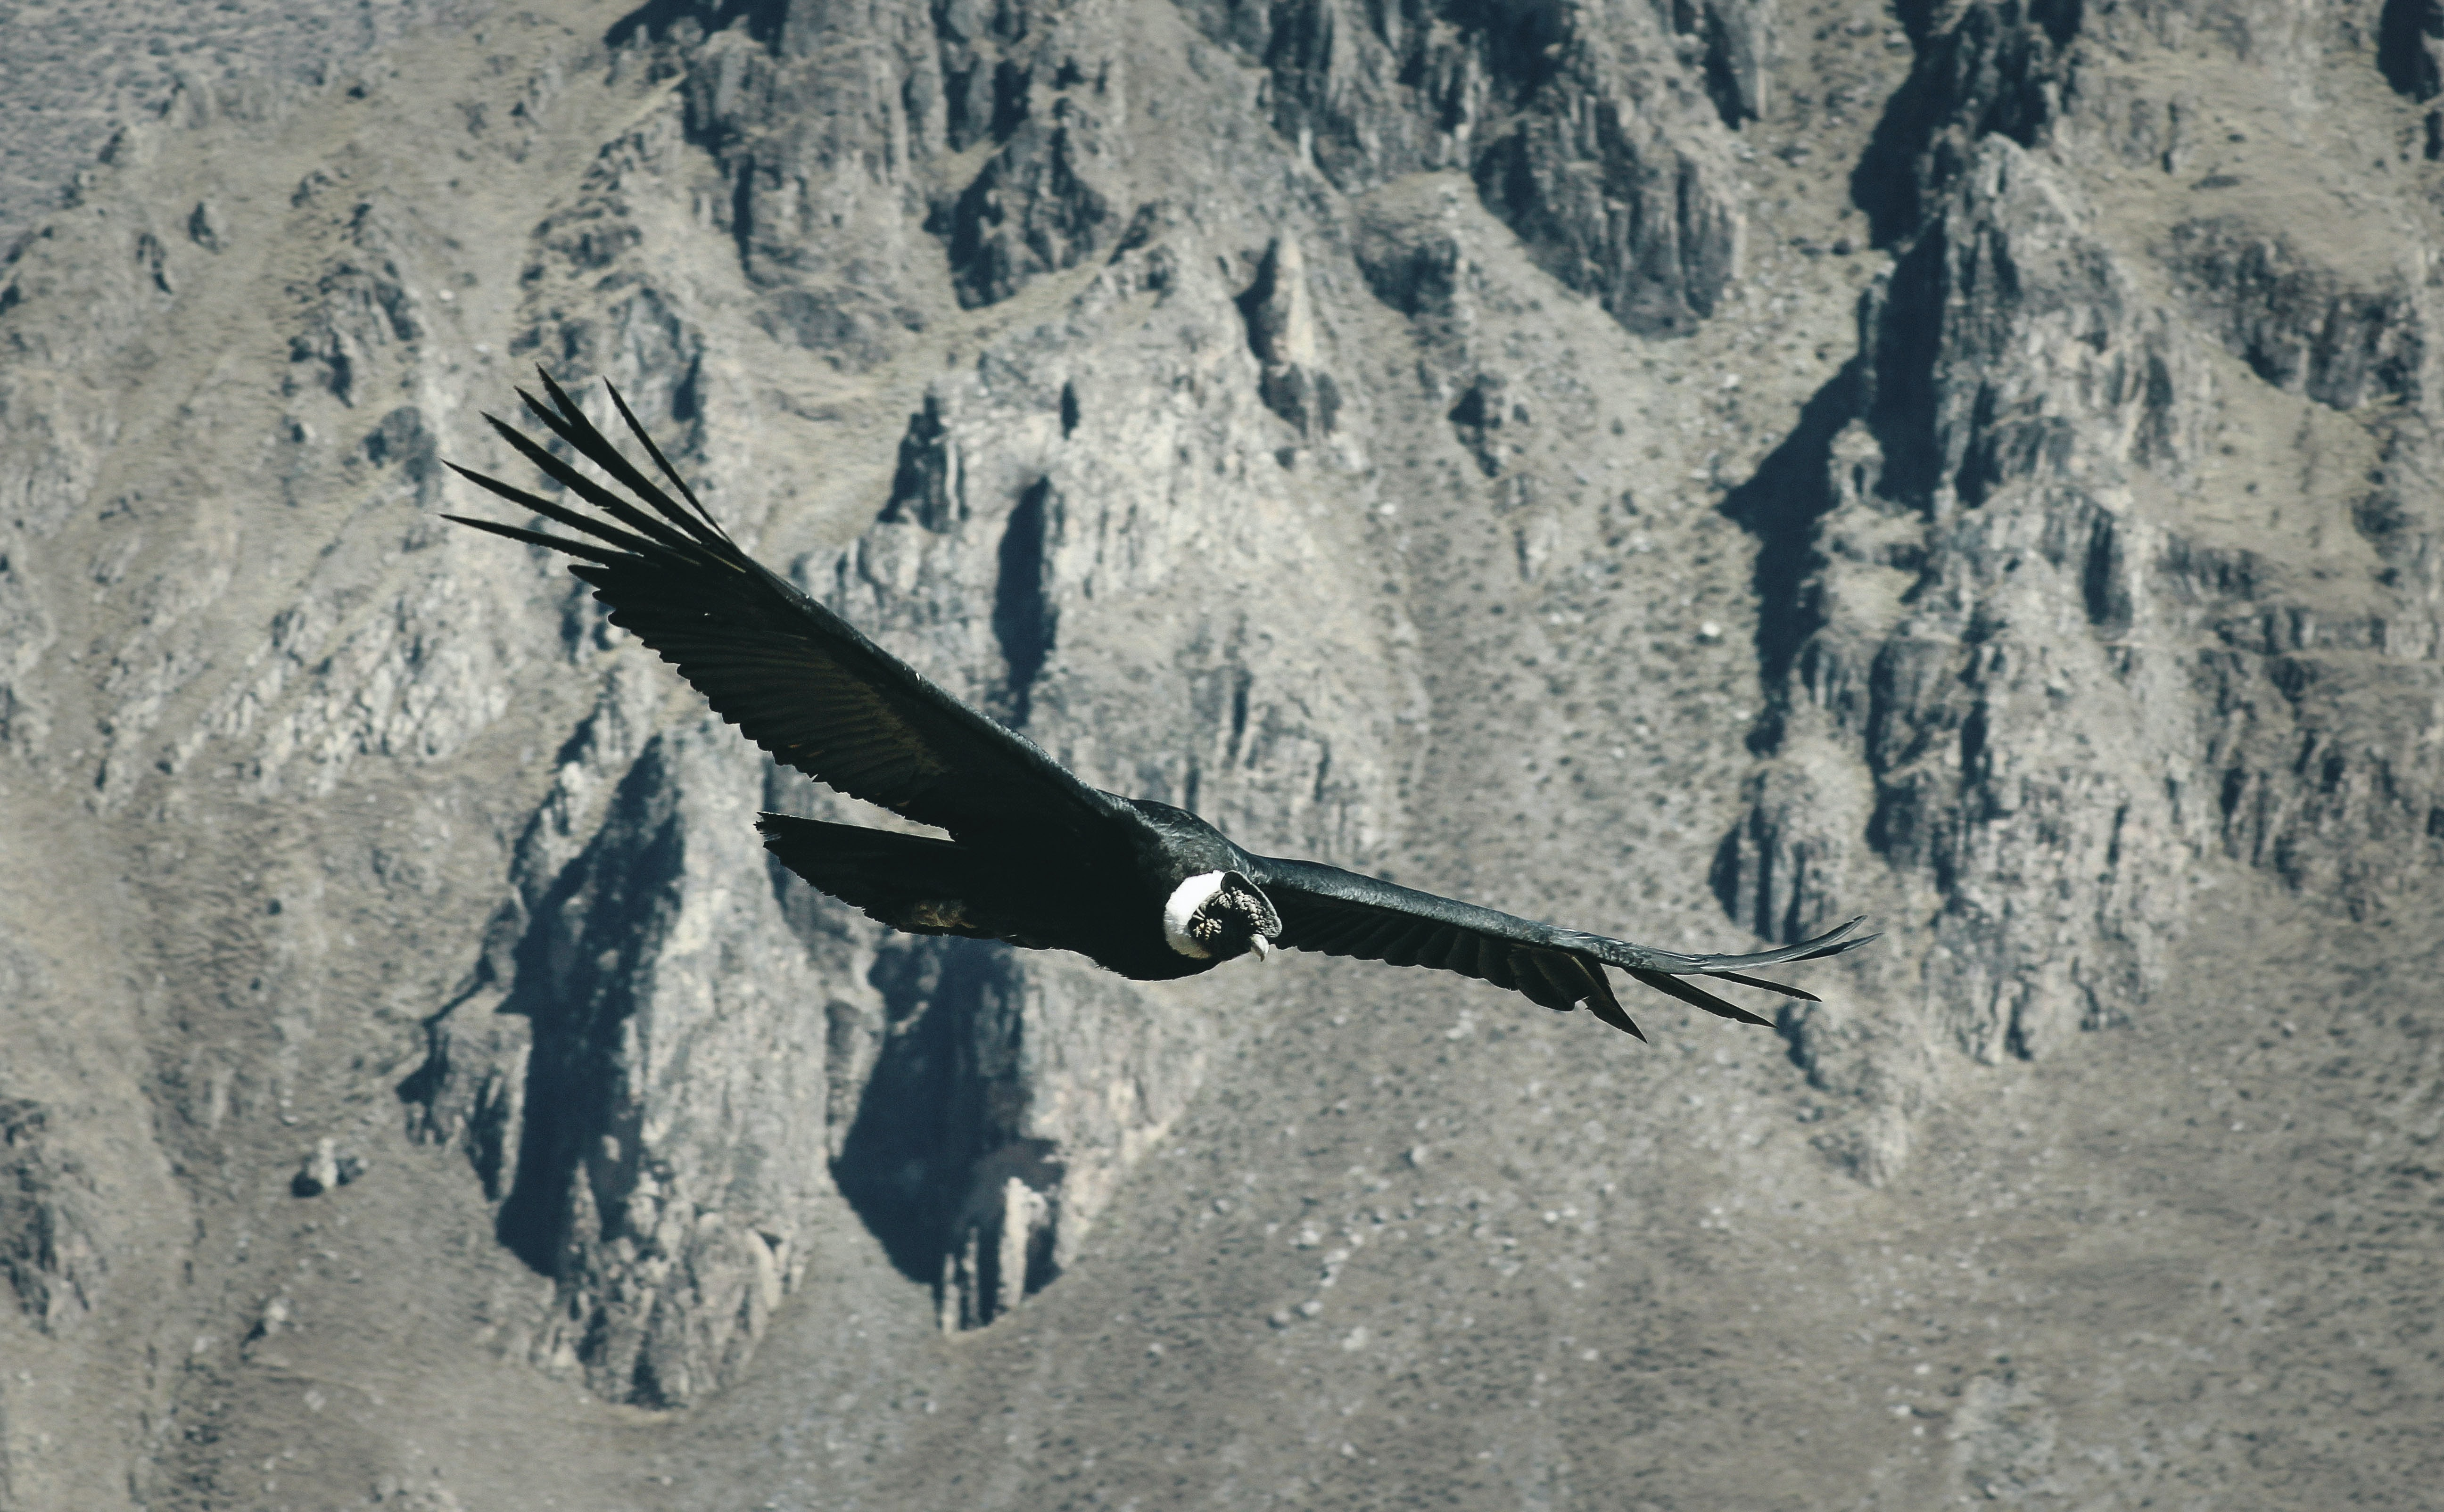 black bird flying over gray mountain